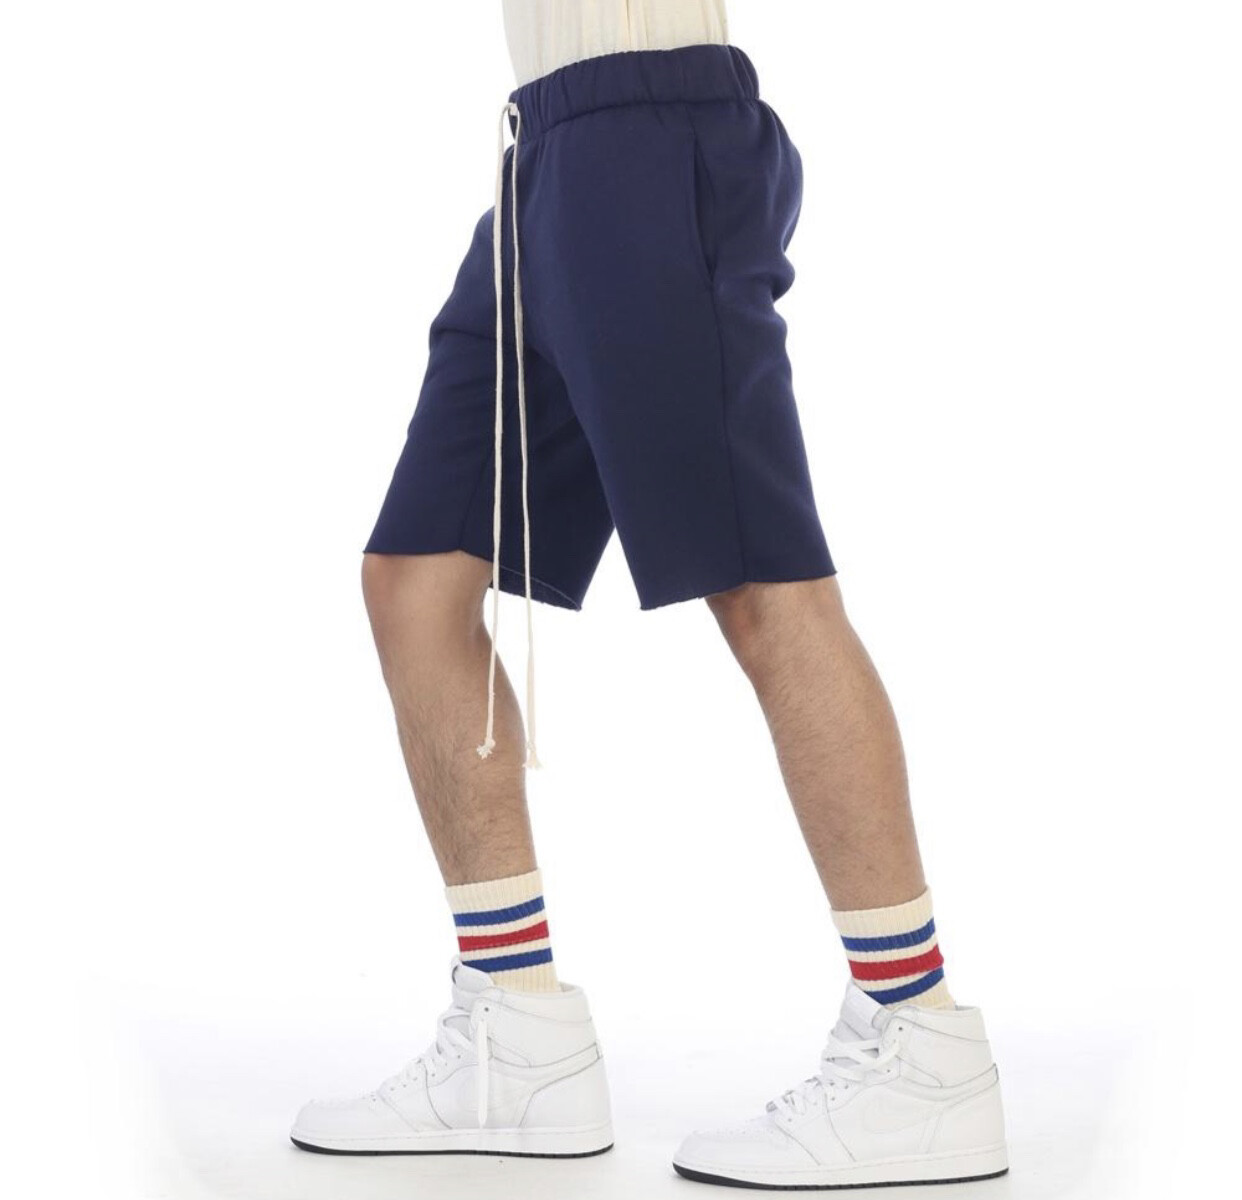 EPTM Plain Fleece Shorts